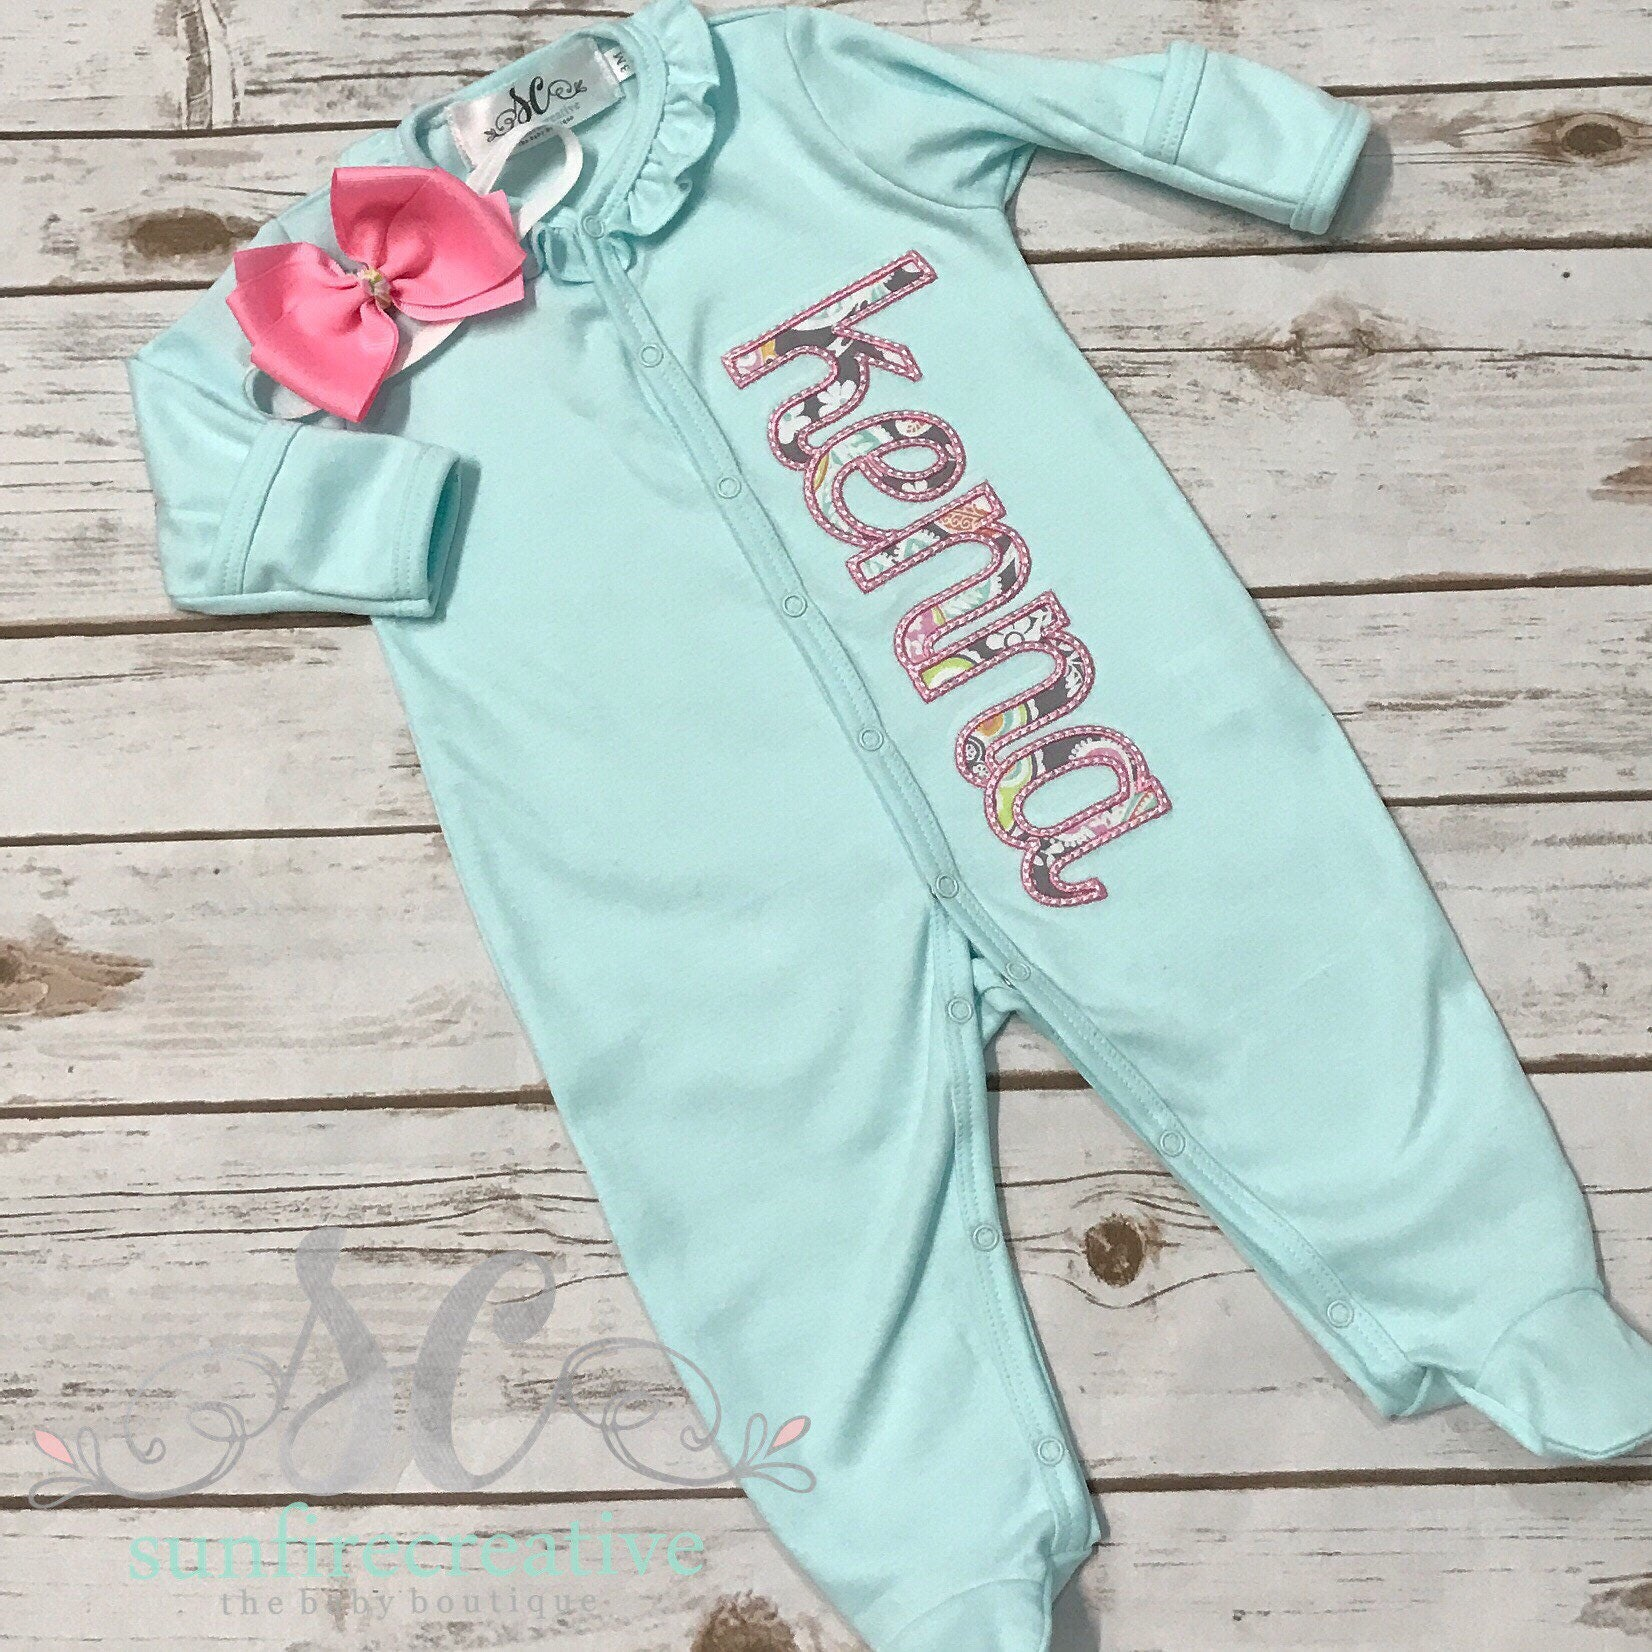 Baby Girl ing Home Outfit Mint Sleeper With Bow Baby Gown